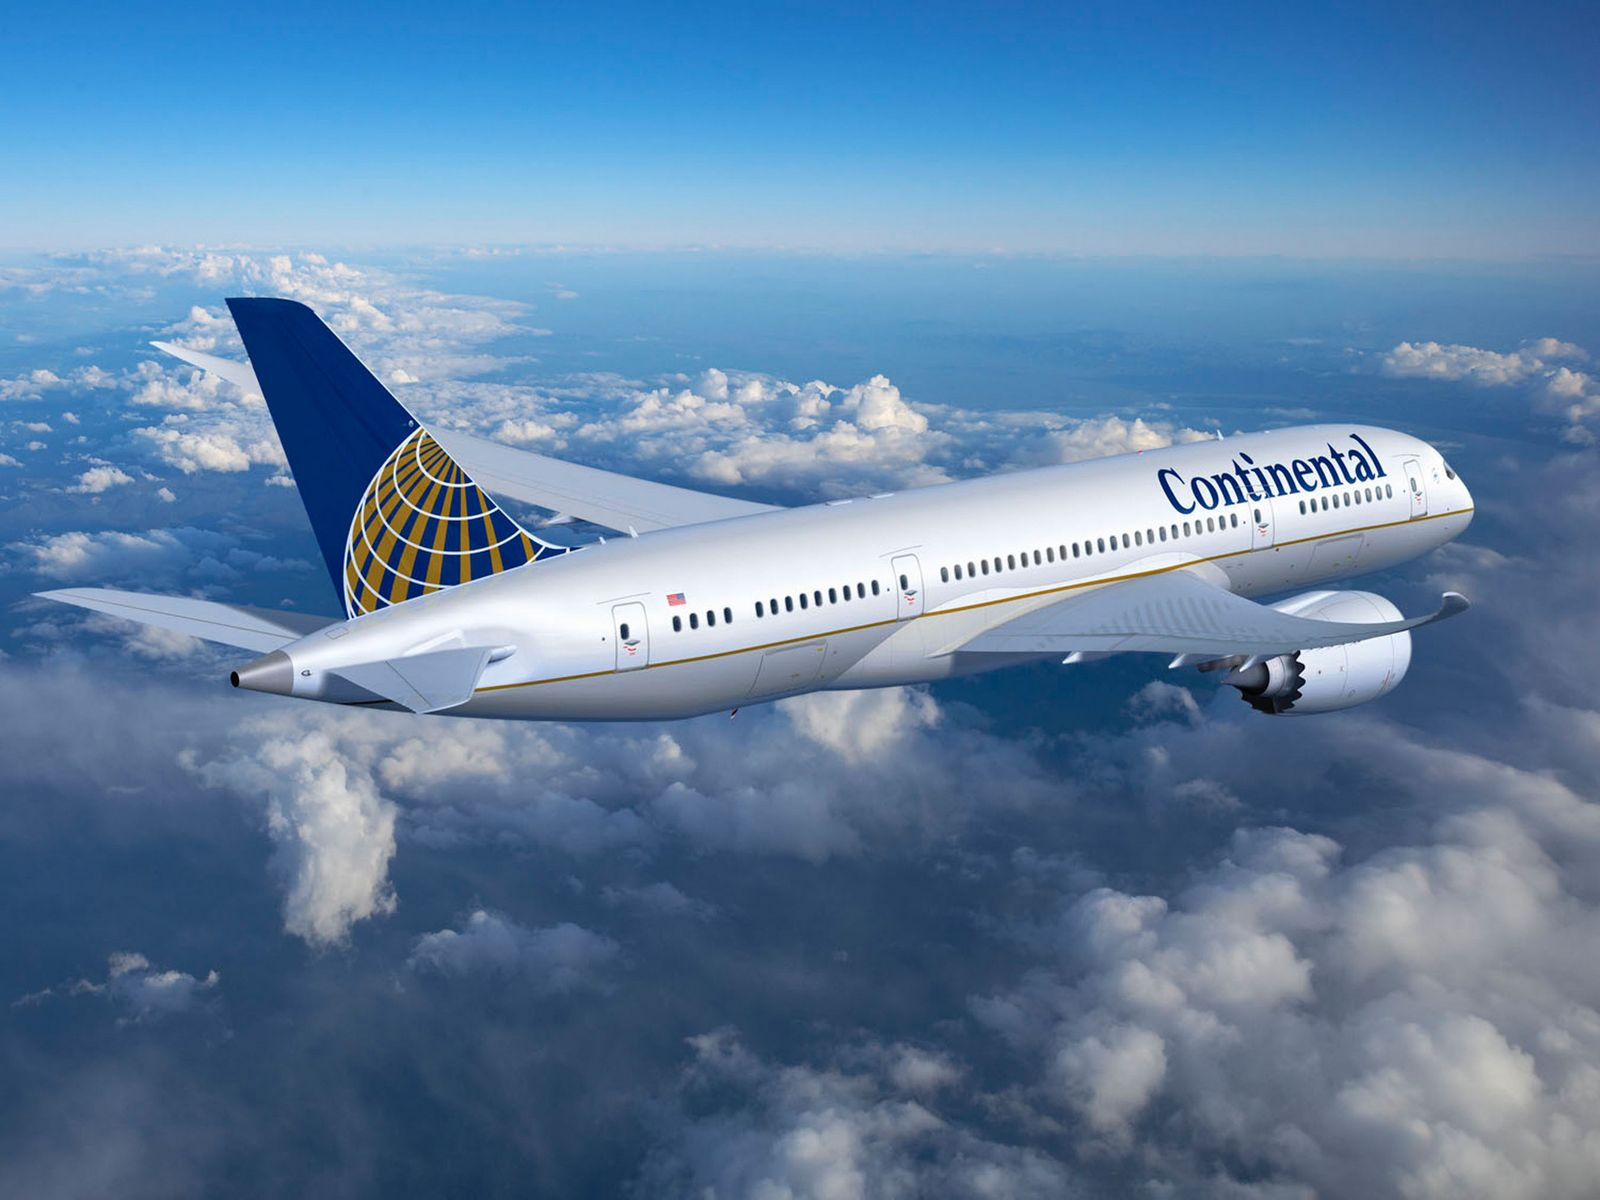 Continental Airlines ordered five 787-9 Dreamliners.  (PRNewsFoto/Continental Airlines) (Newscom TagID: prnphotos060427)     [Photo via Newscom]